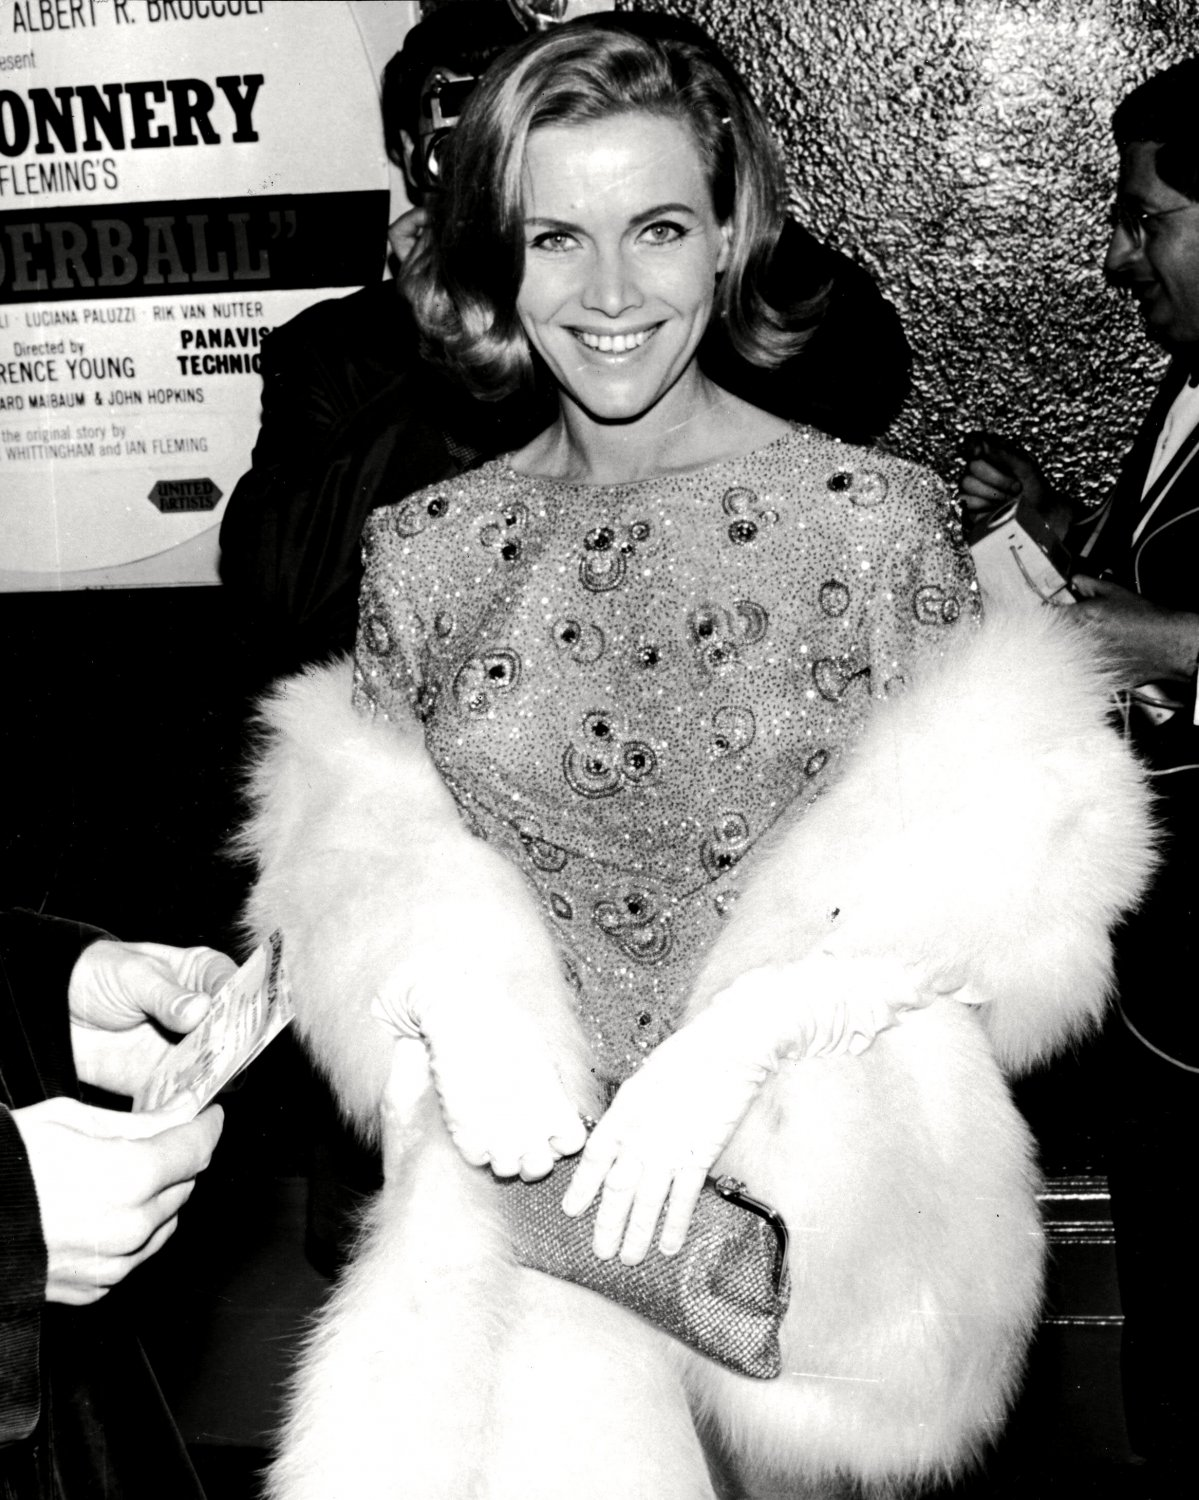 HONOR BLACKMAN @ LONDON PREMIERE OF 'THUNDEBALL' - 8X10 PUBLICITY PHOTO (EE-020)